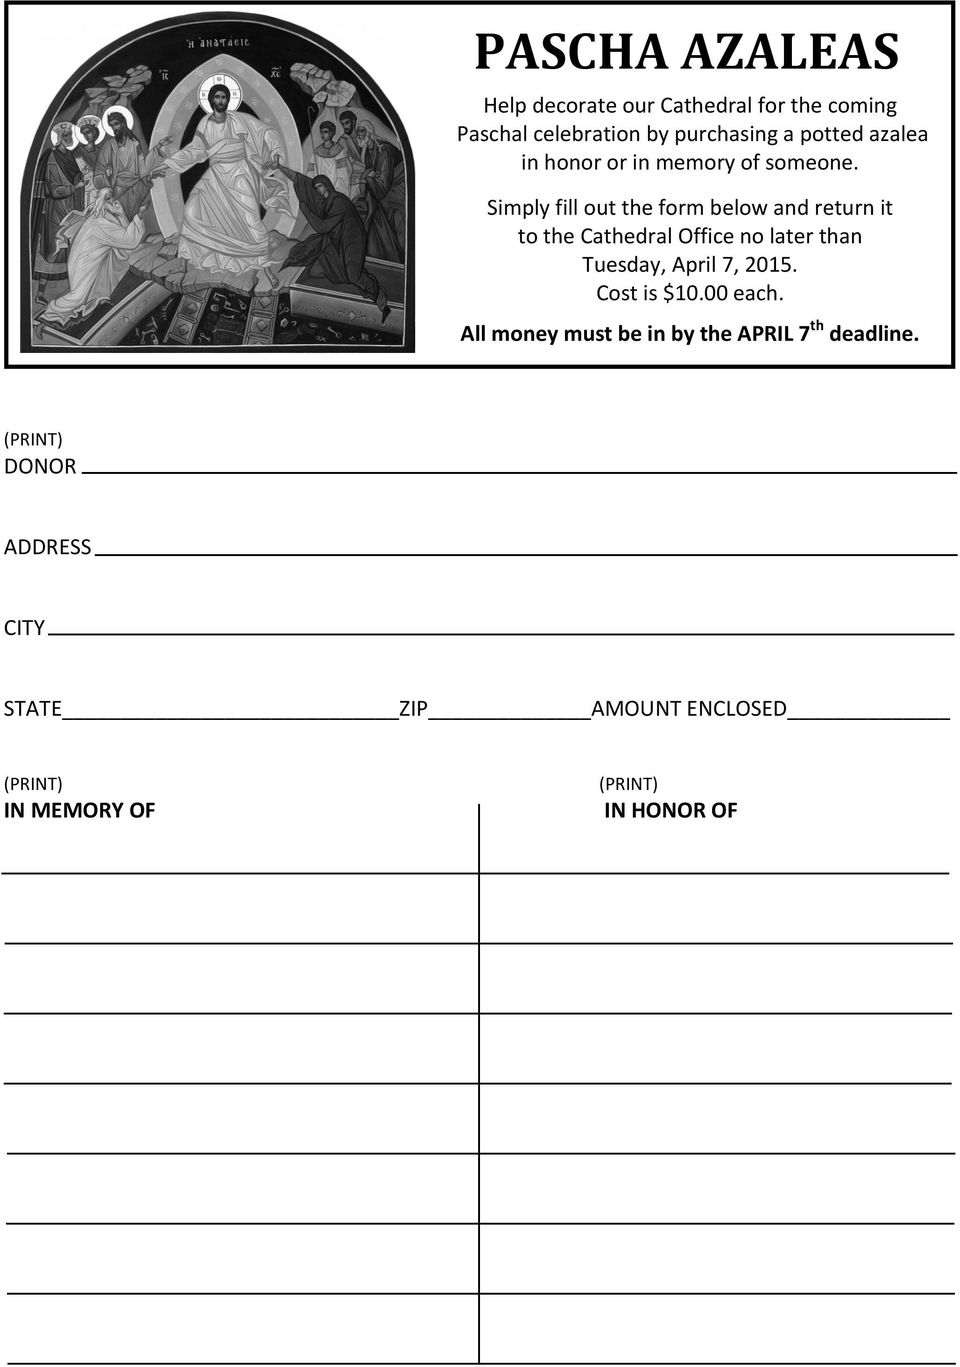 Simply fill out the form below and return it to the Cathedral Office no later than Tuesday, April 7,